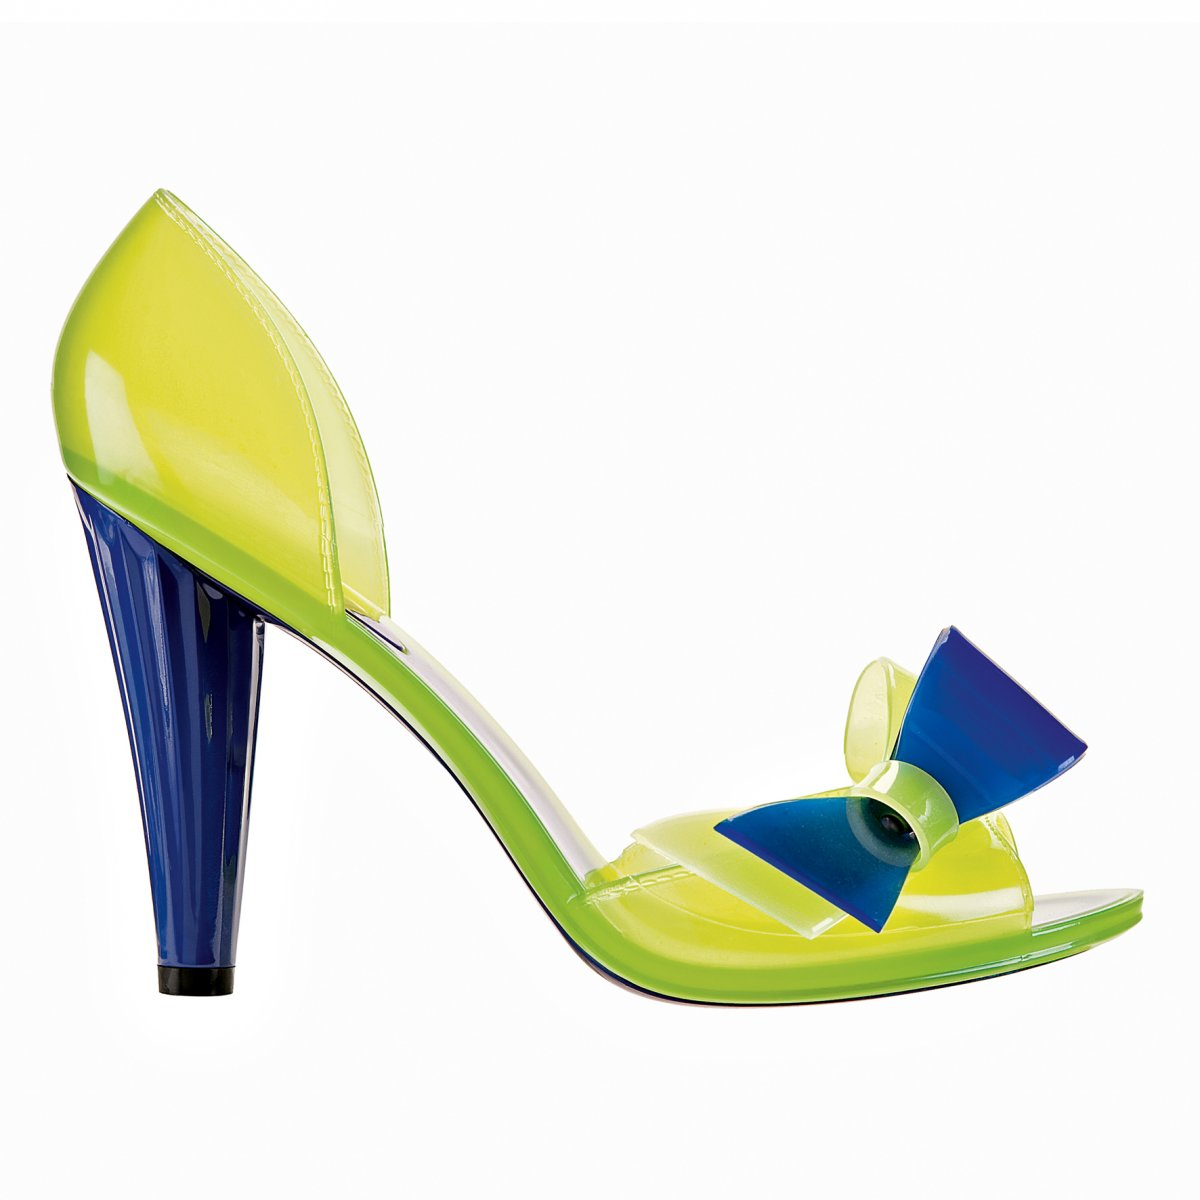 JUCCA SHOES